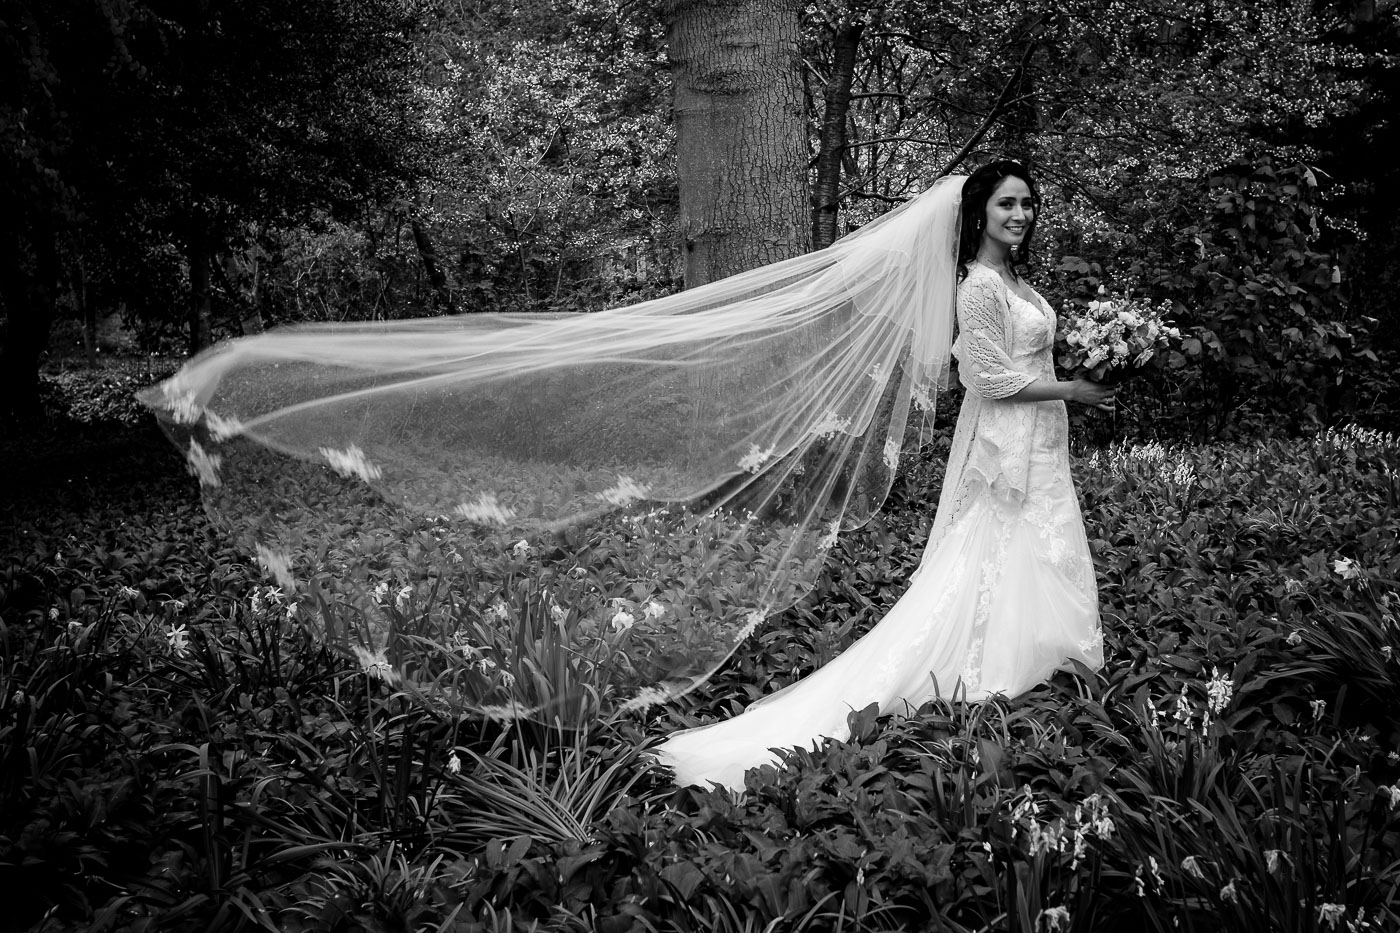 The bride, veil flowing in the wind